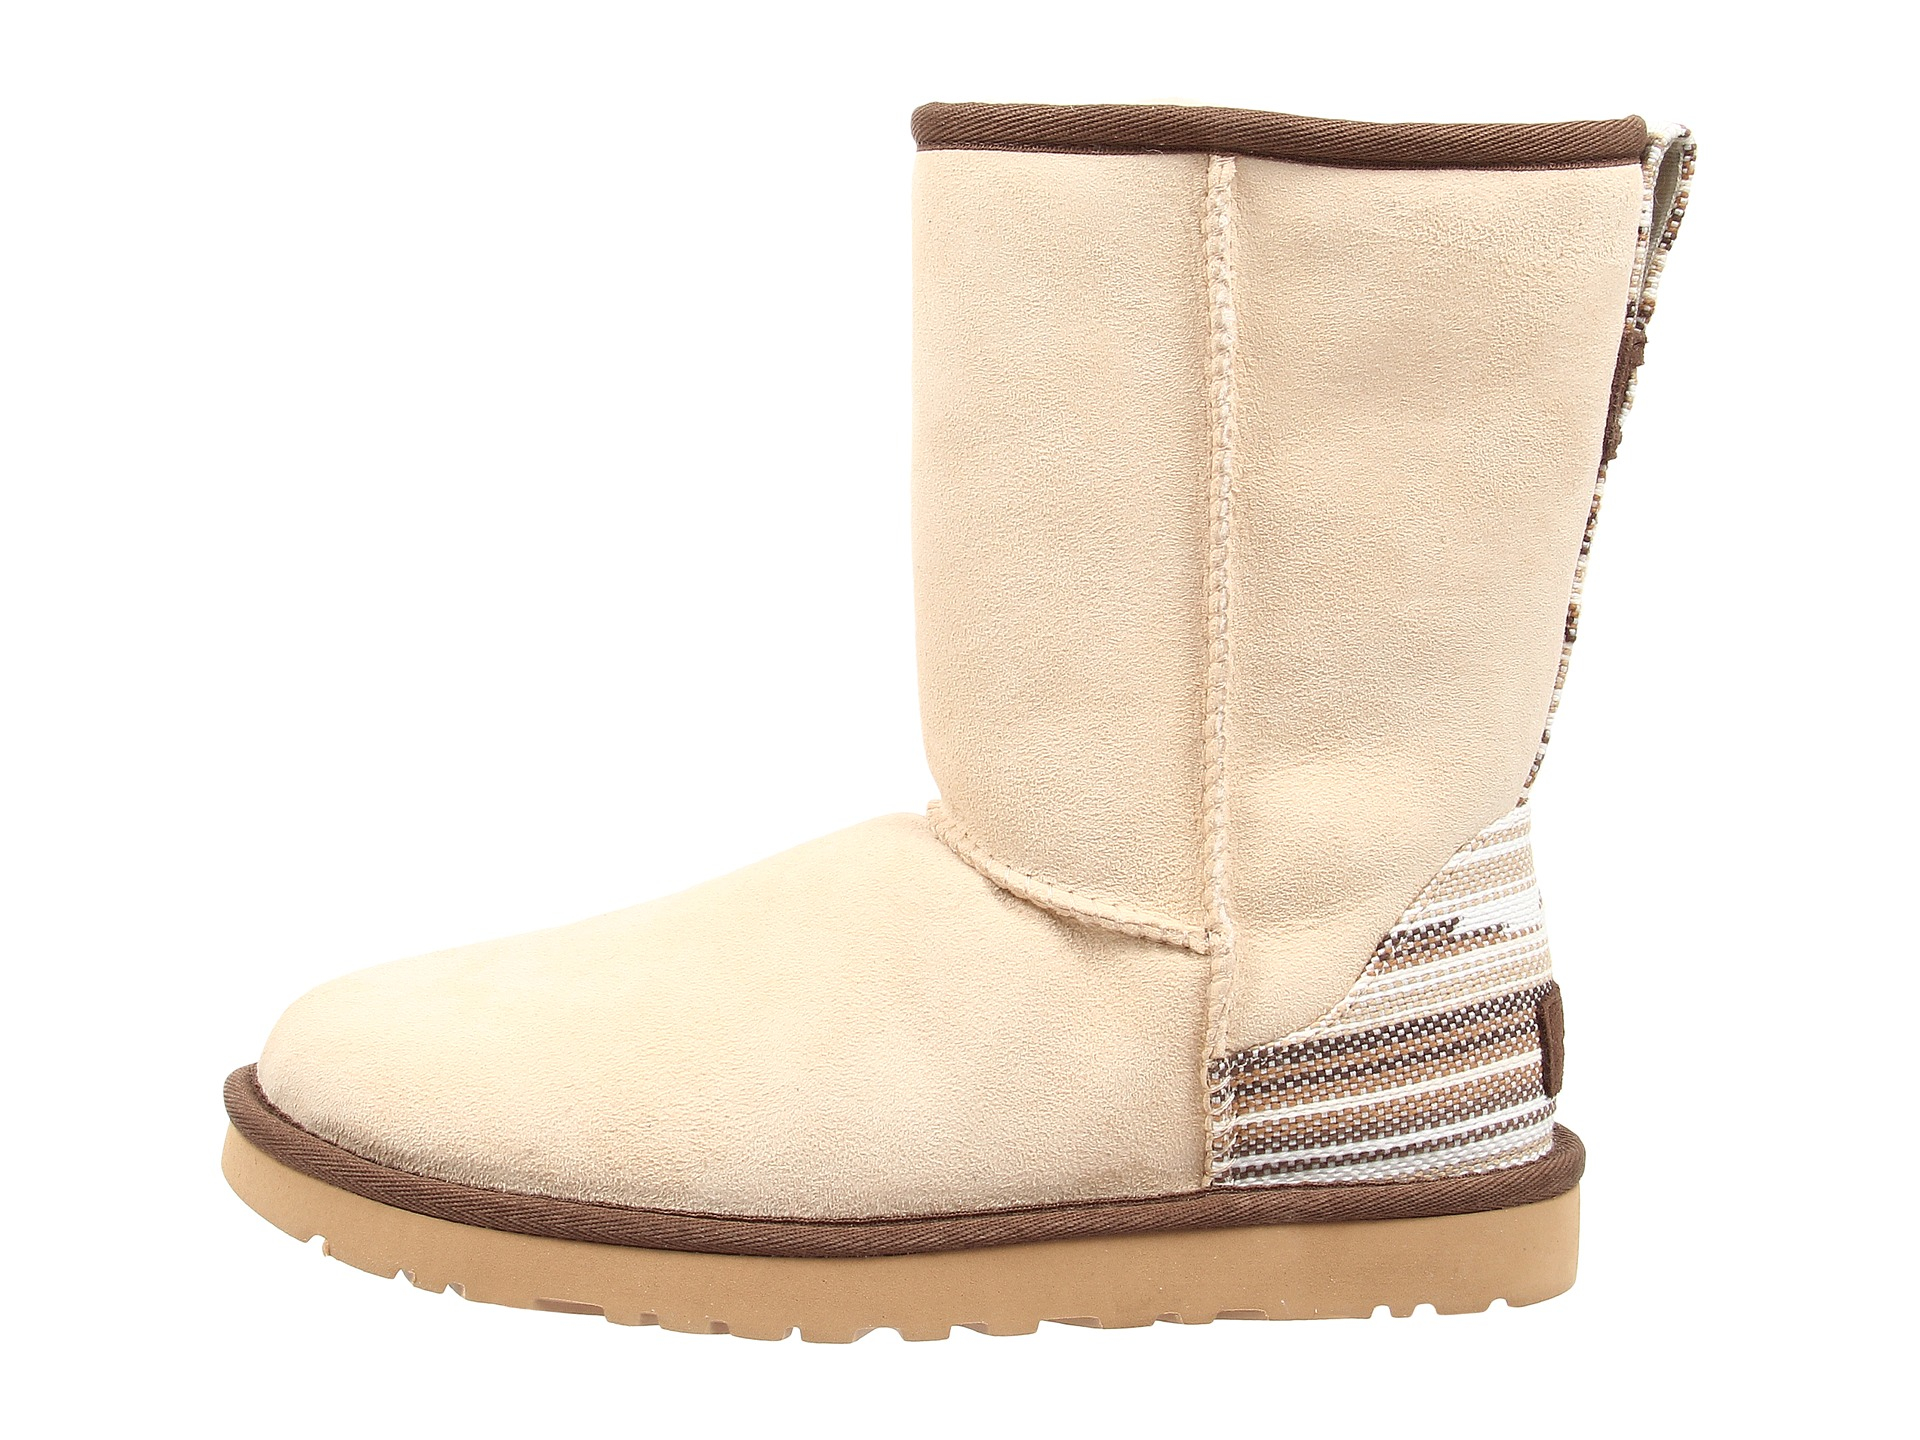 6a7c1f1764ec1a ... hot lyst ugg classic short serape in natural 99c95 19fb8